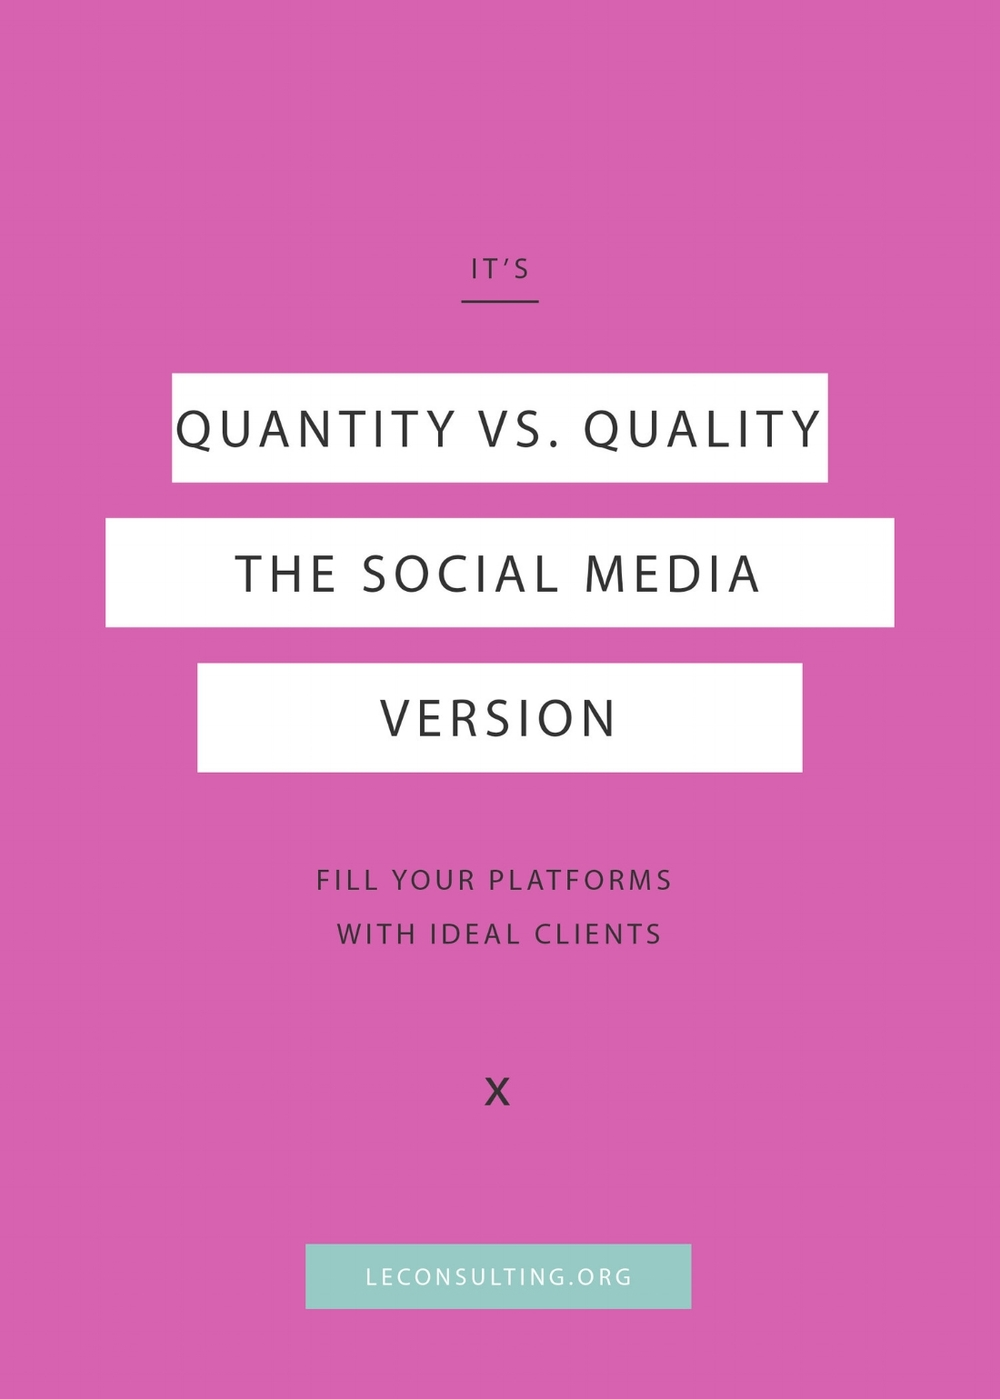 It's true — entrepreneurs love growing their social media accounts. But those numbers mean nothing if they're not filled with your ideal customers. Keep reading to find out how fill up your business's social media platforms with quality ideal customers. | LE Consulting